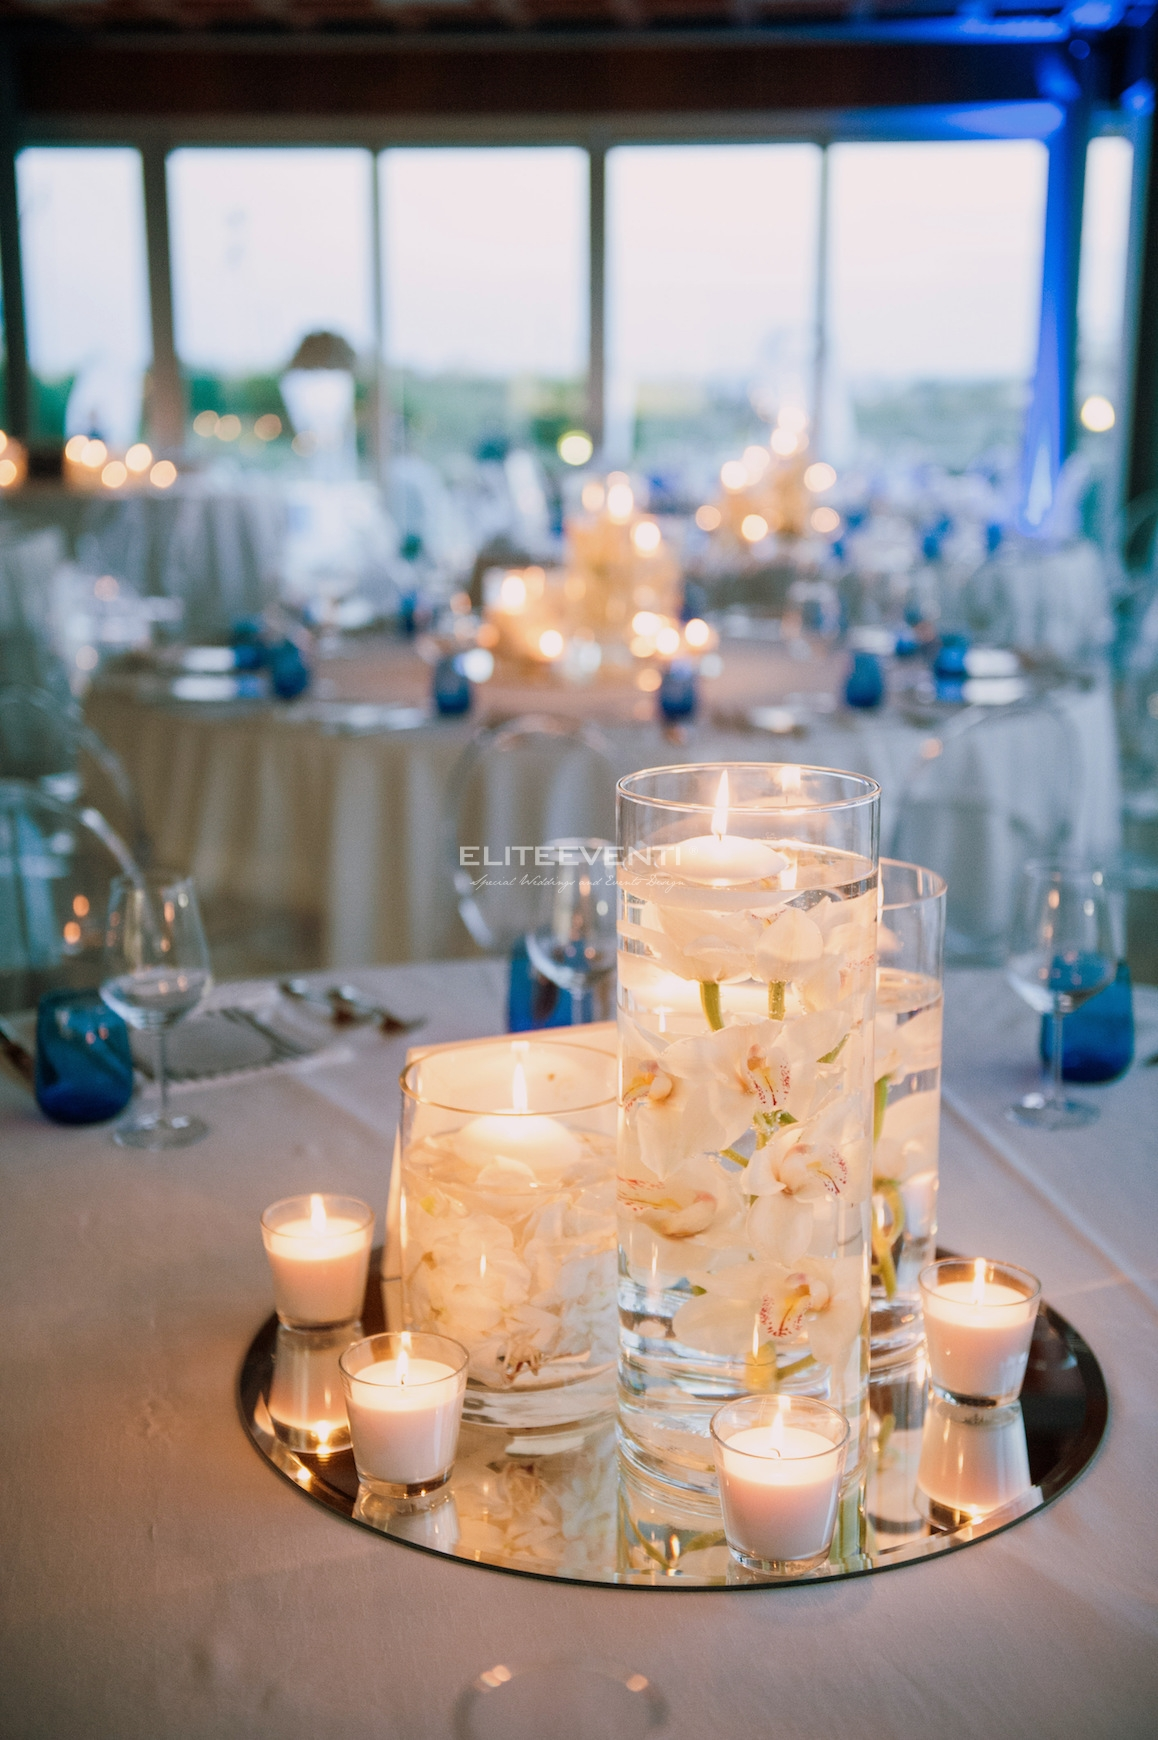 Famoso Navy Chic Wedding - Eliteeventi RJ37